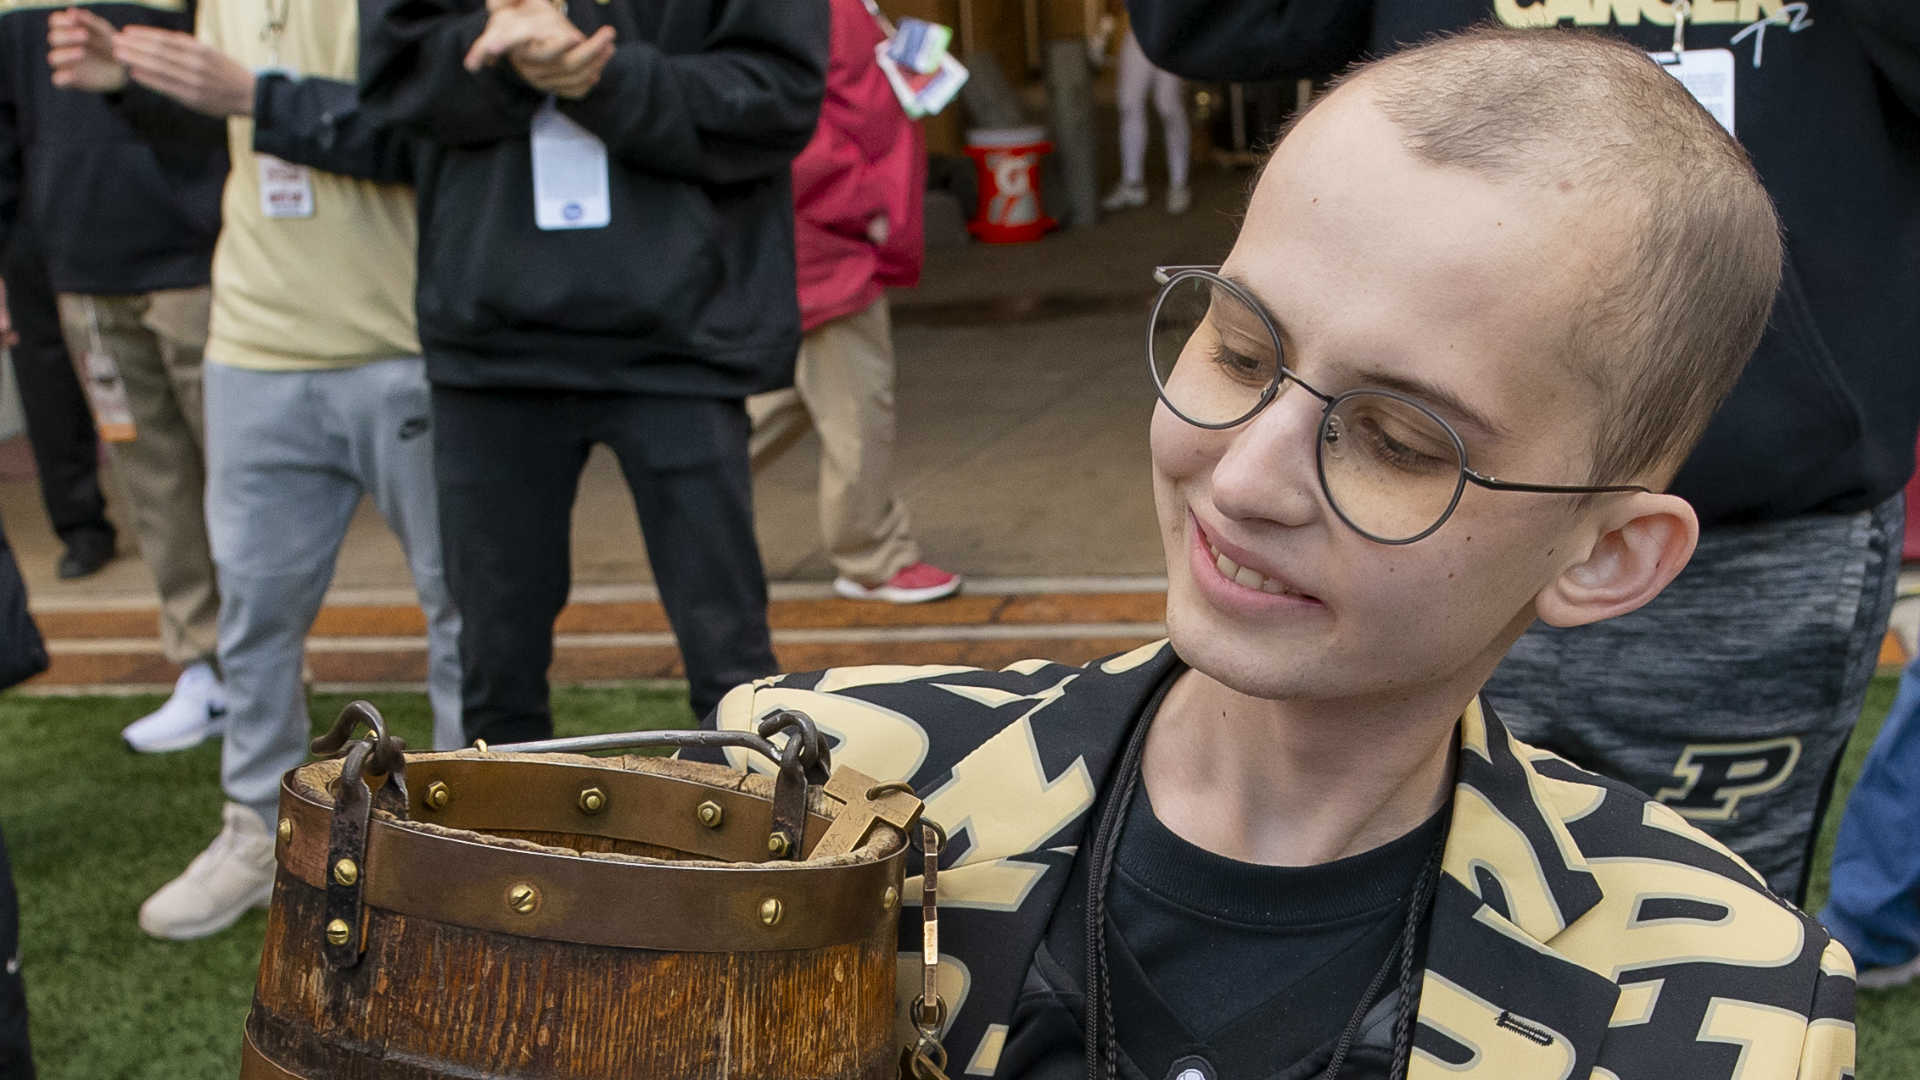 Florida man charged with threatening Tyler Trent family